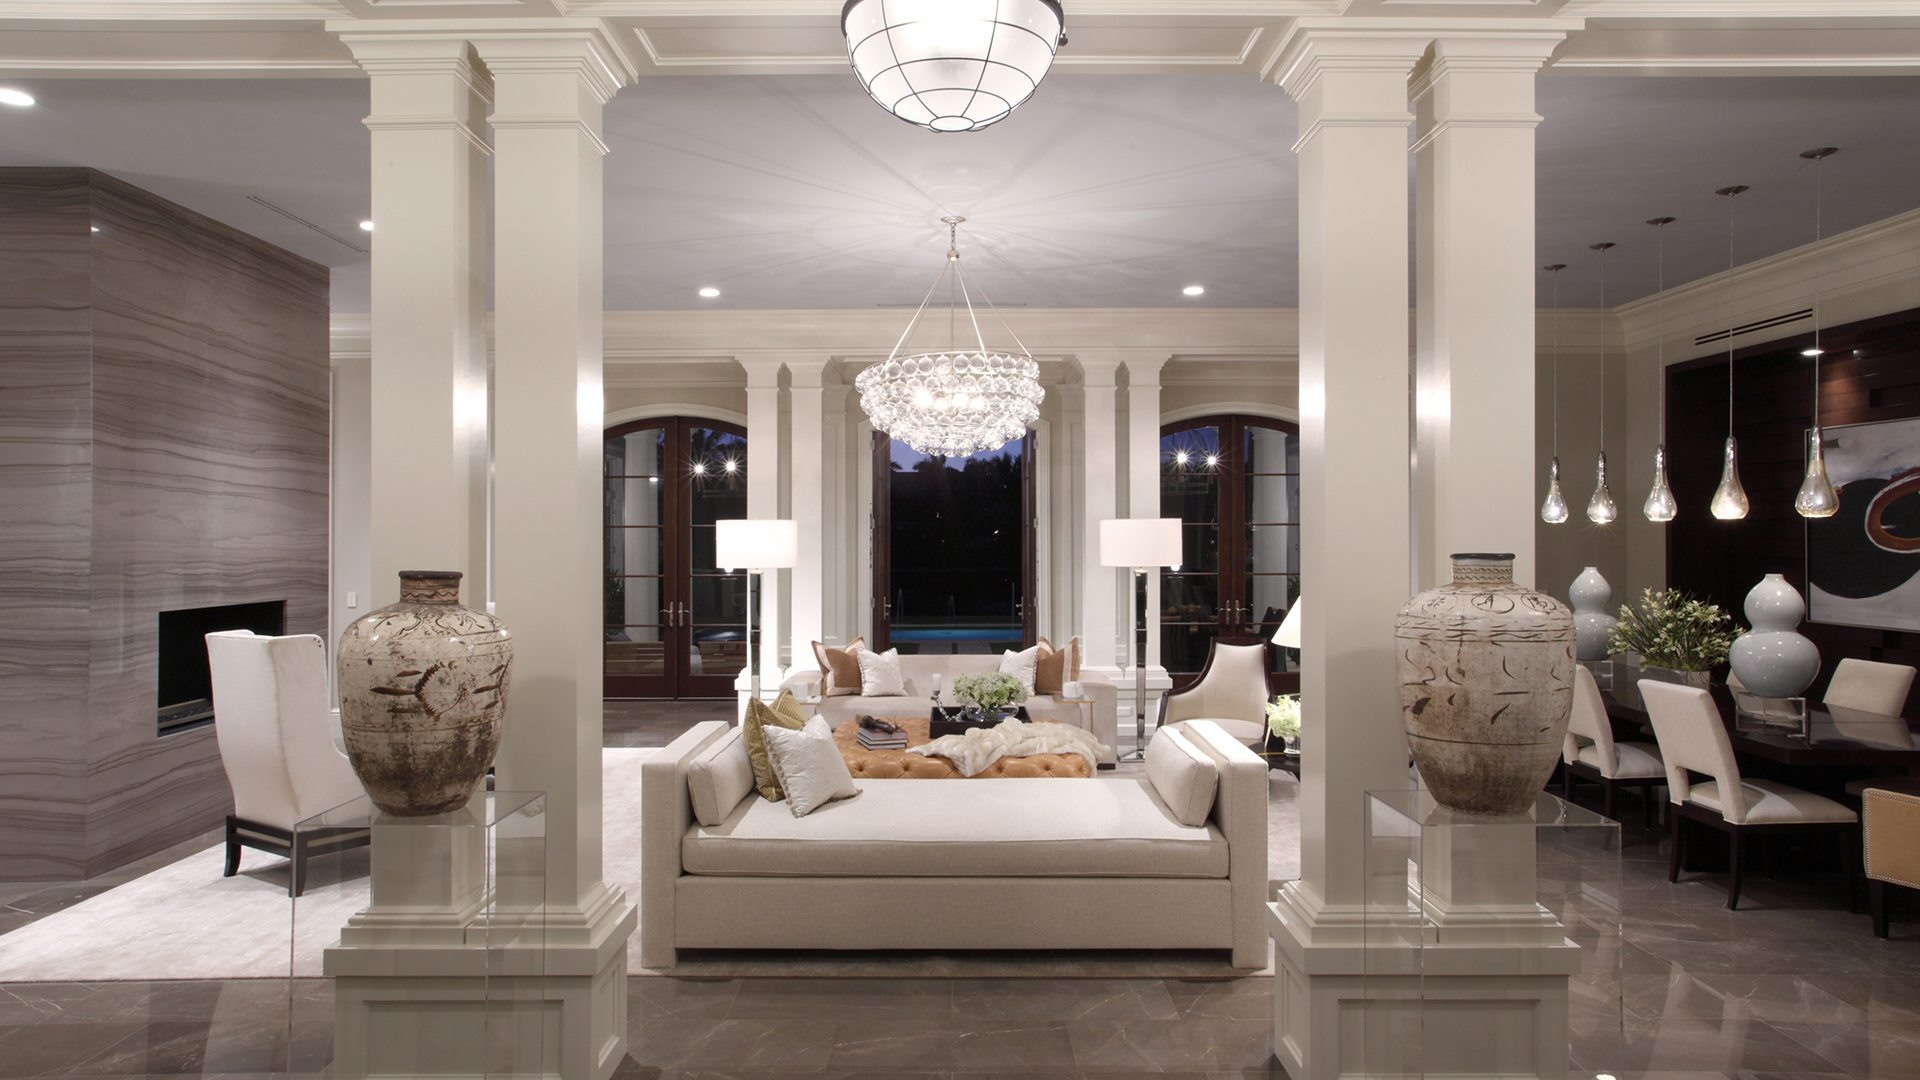 Marc-Michaels Sophisticated Transitional Design Feature Living Space